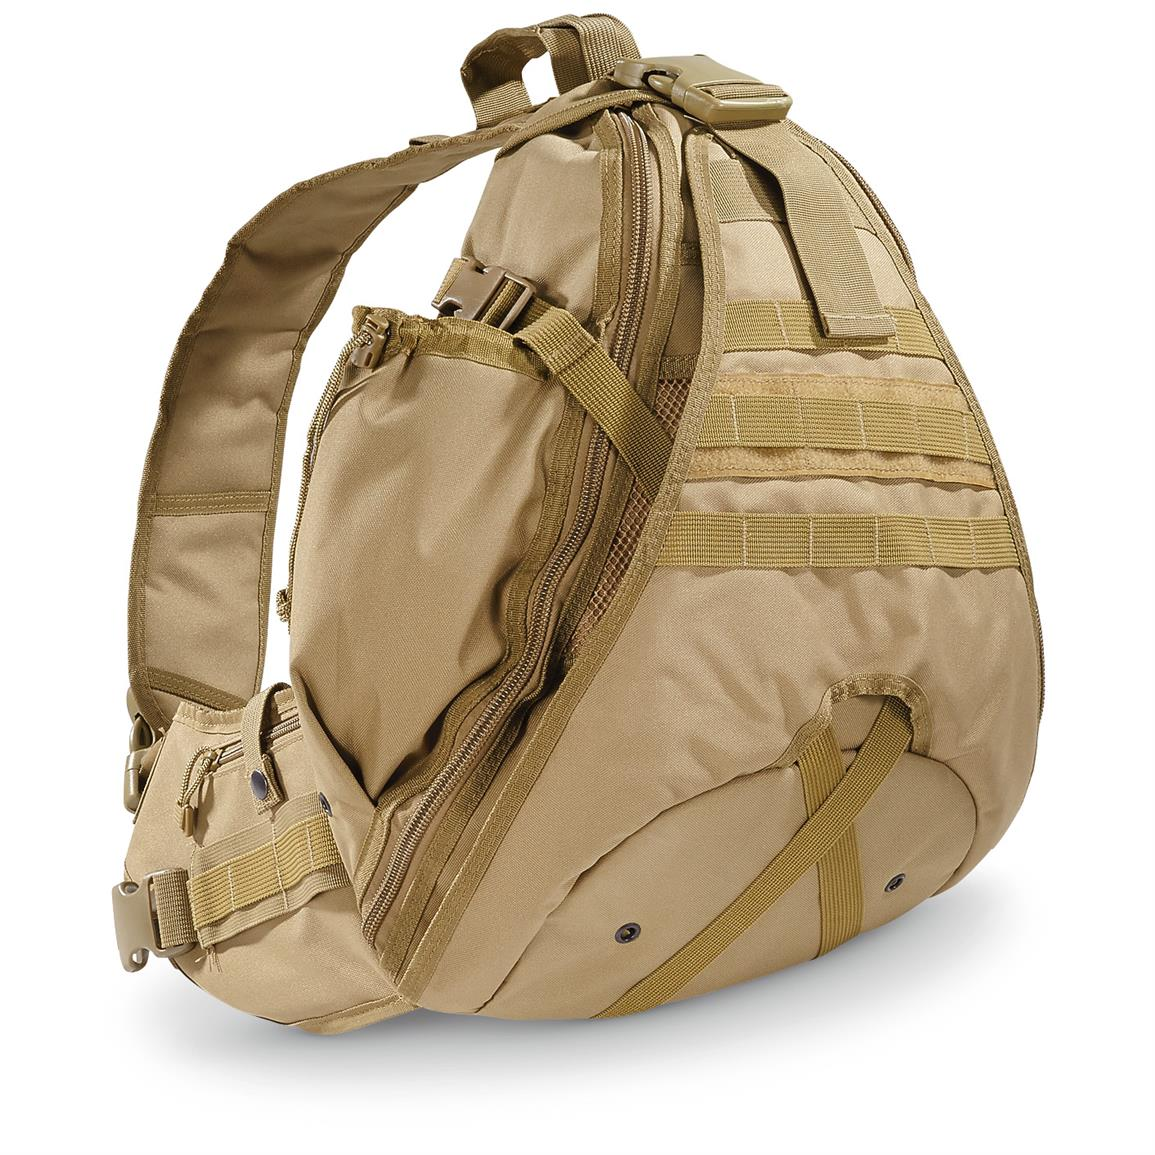 Cactus Jack Enhanced Sling Bag, Coyote Tan